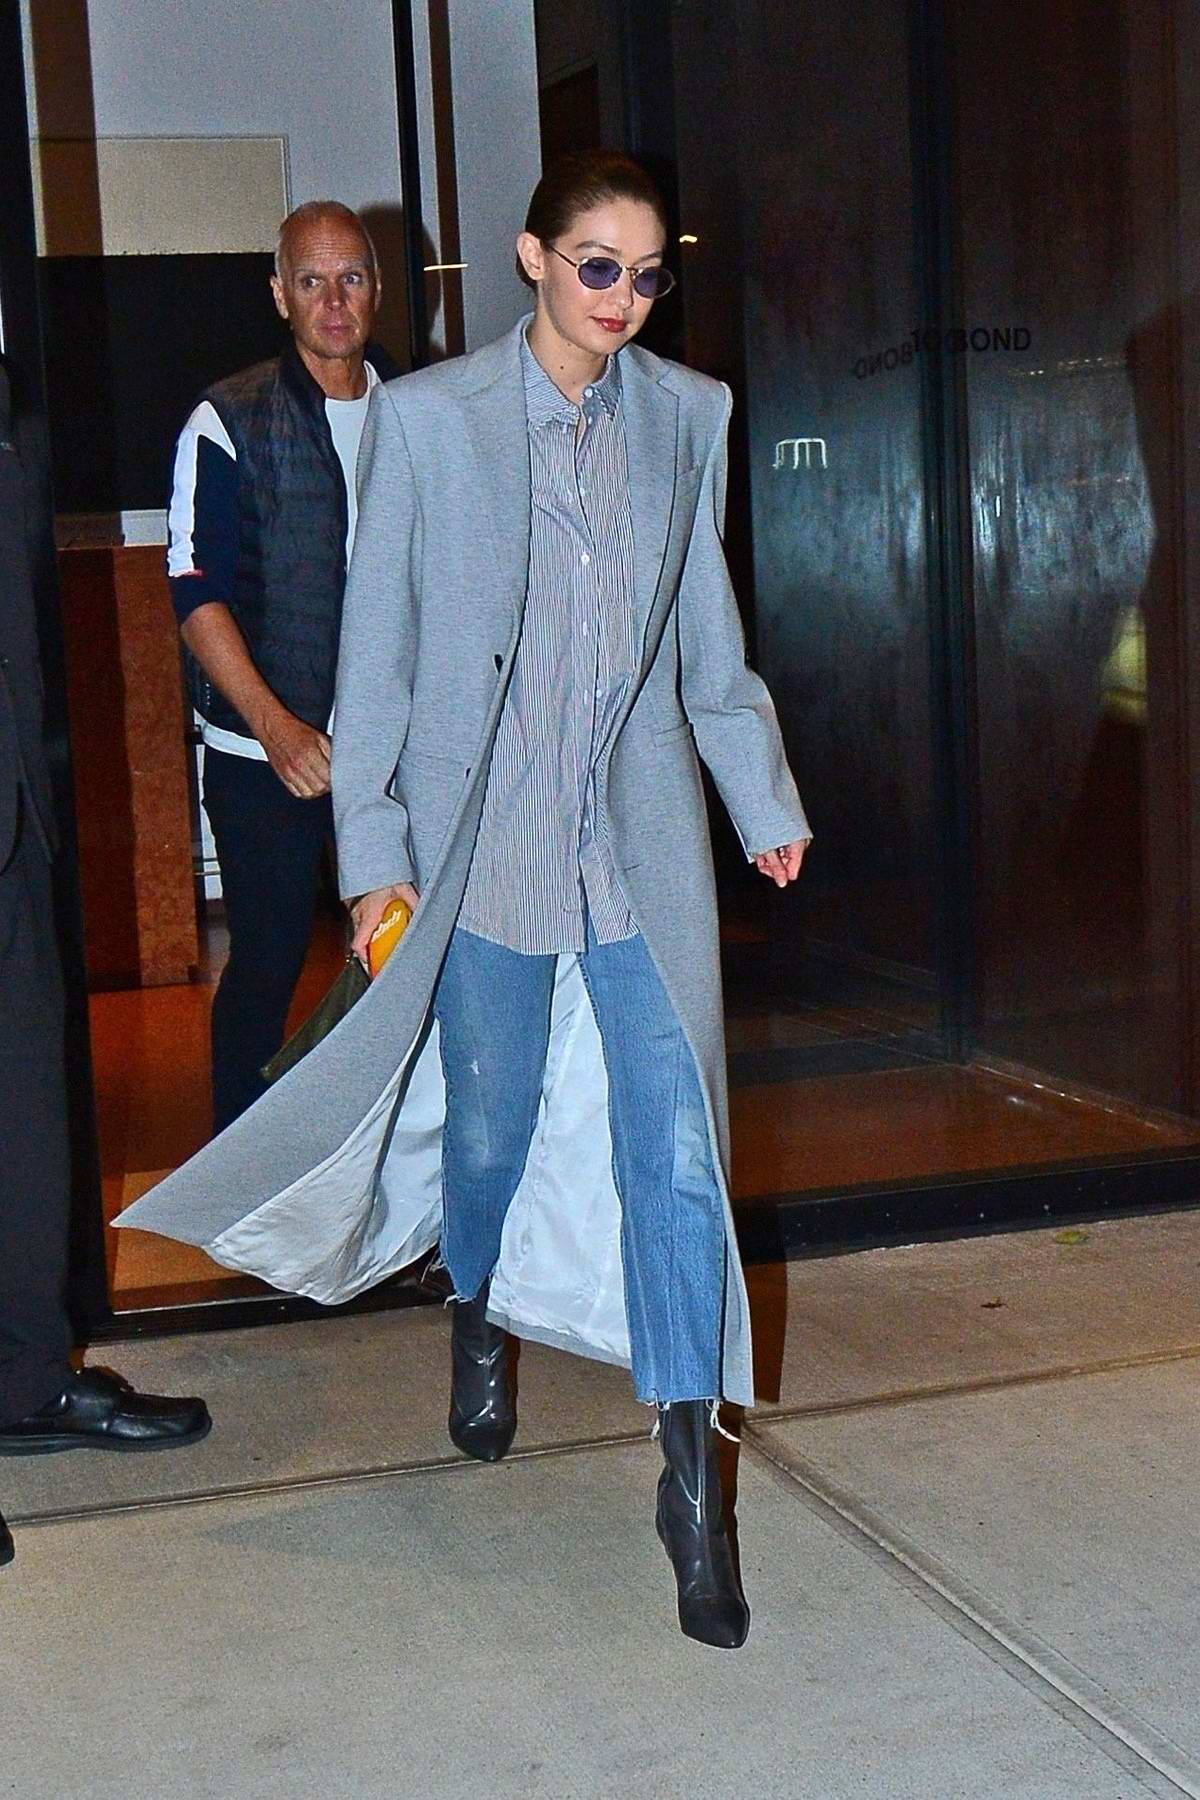 Gigi Hadid looks chic in a long grey coat as she steps out in Manhattan, New York City